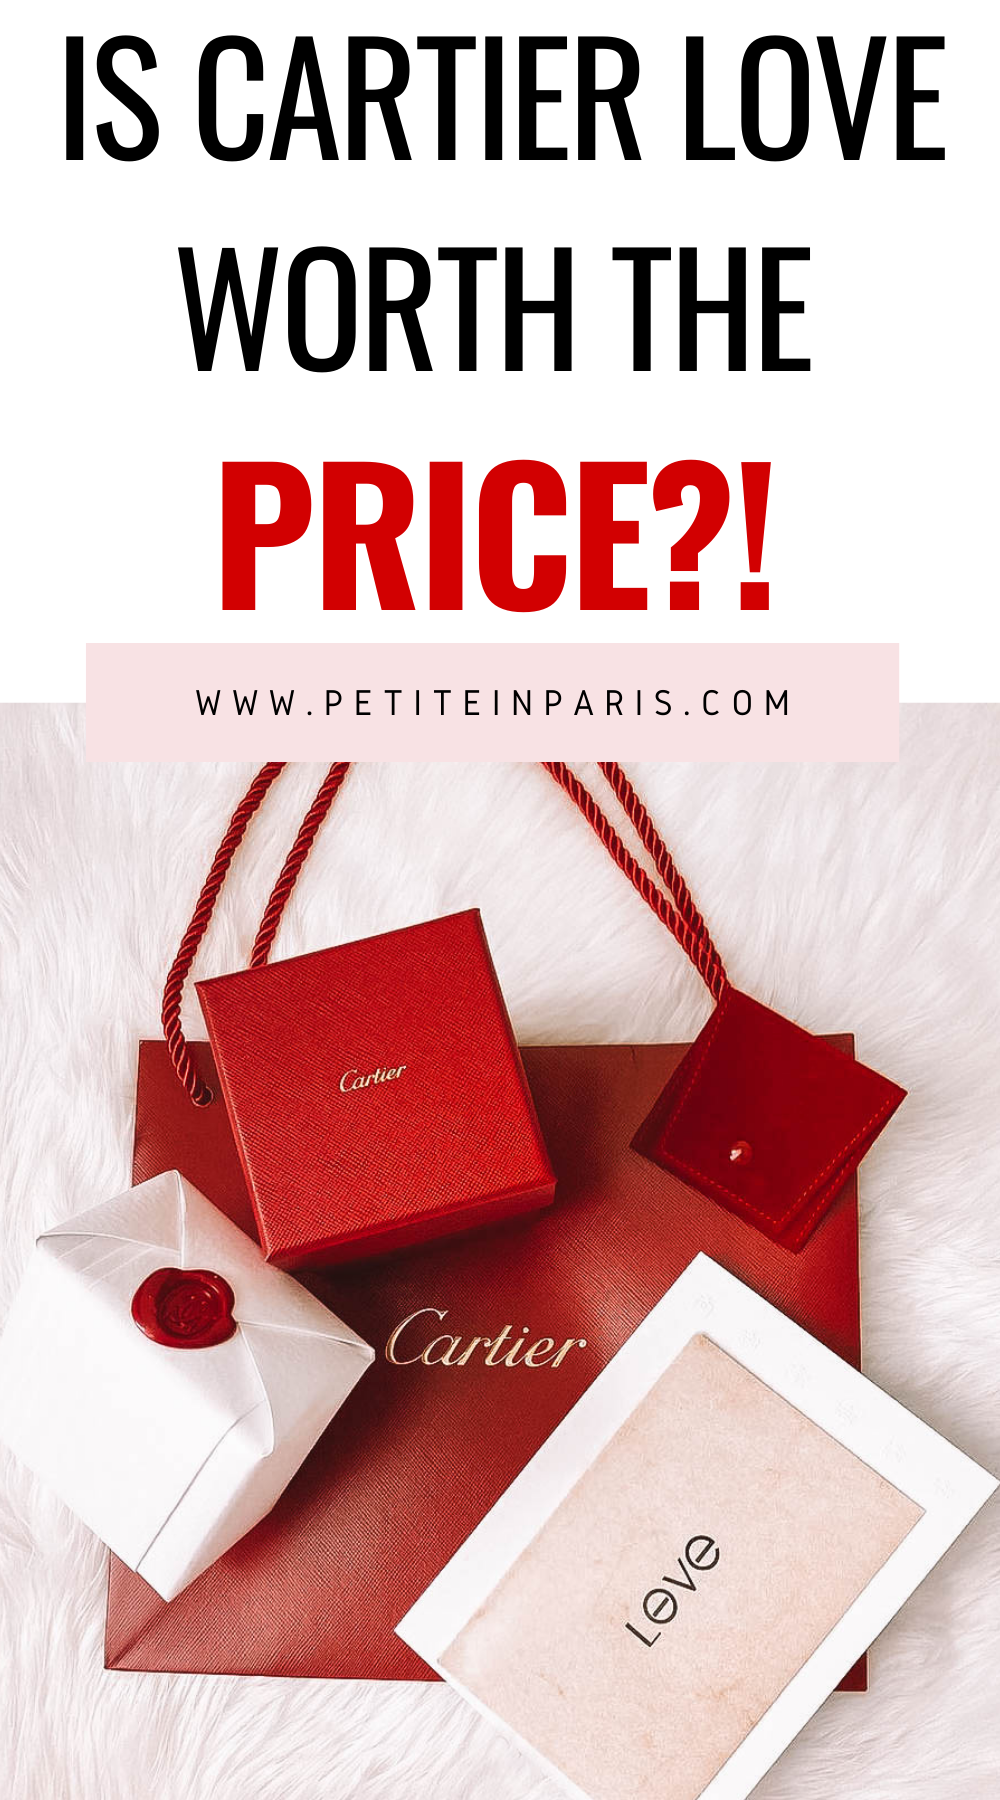 Cartier love ring worth the price cartier love ring bag and box